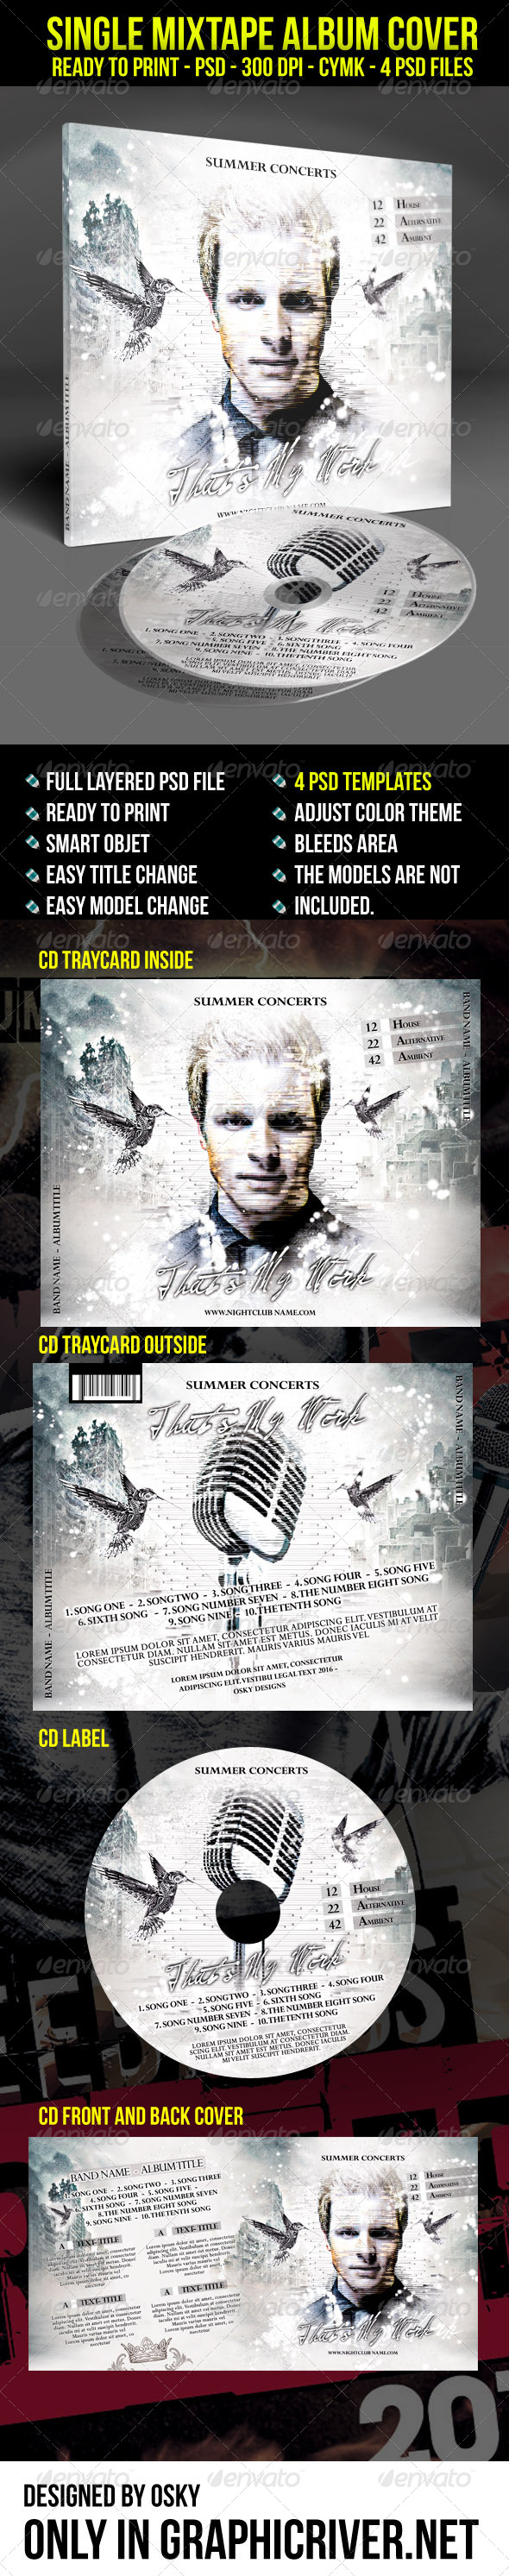 GraphicRiver Single Mixtape Album Cover 7451865